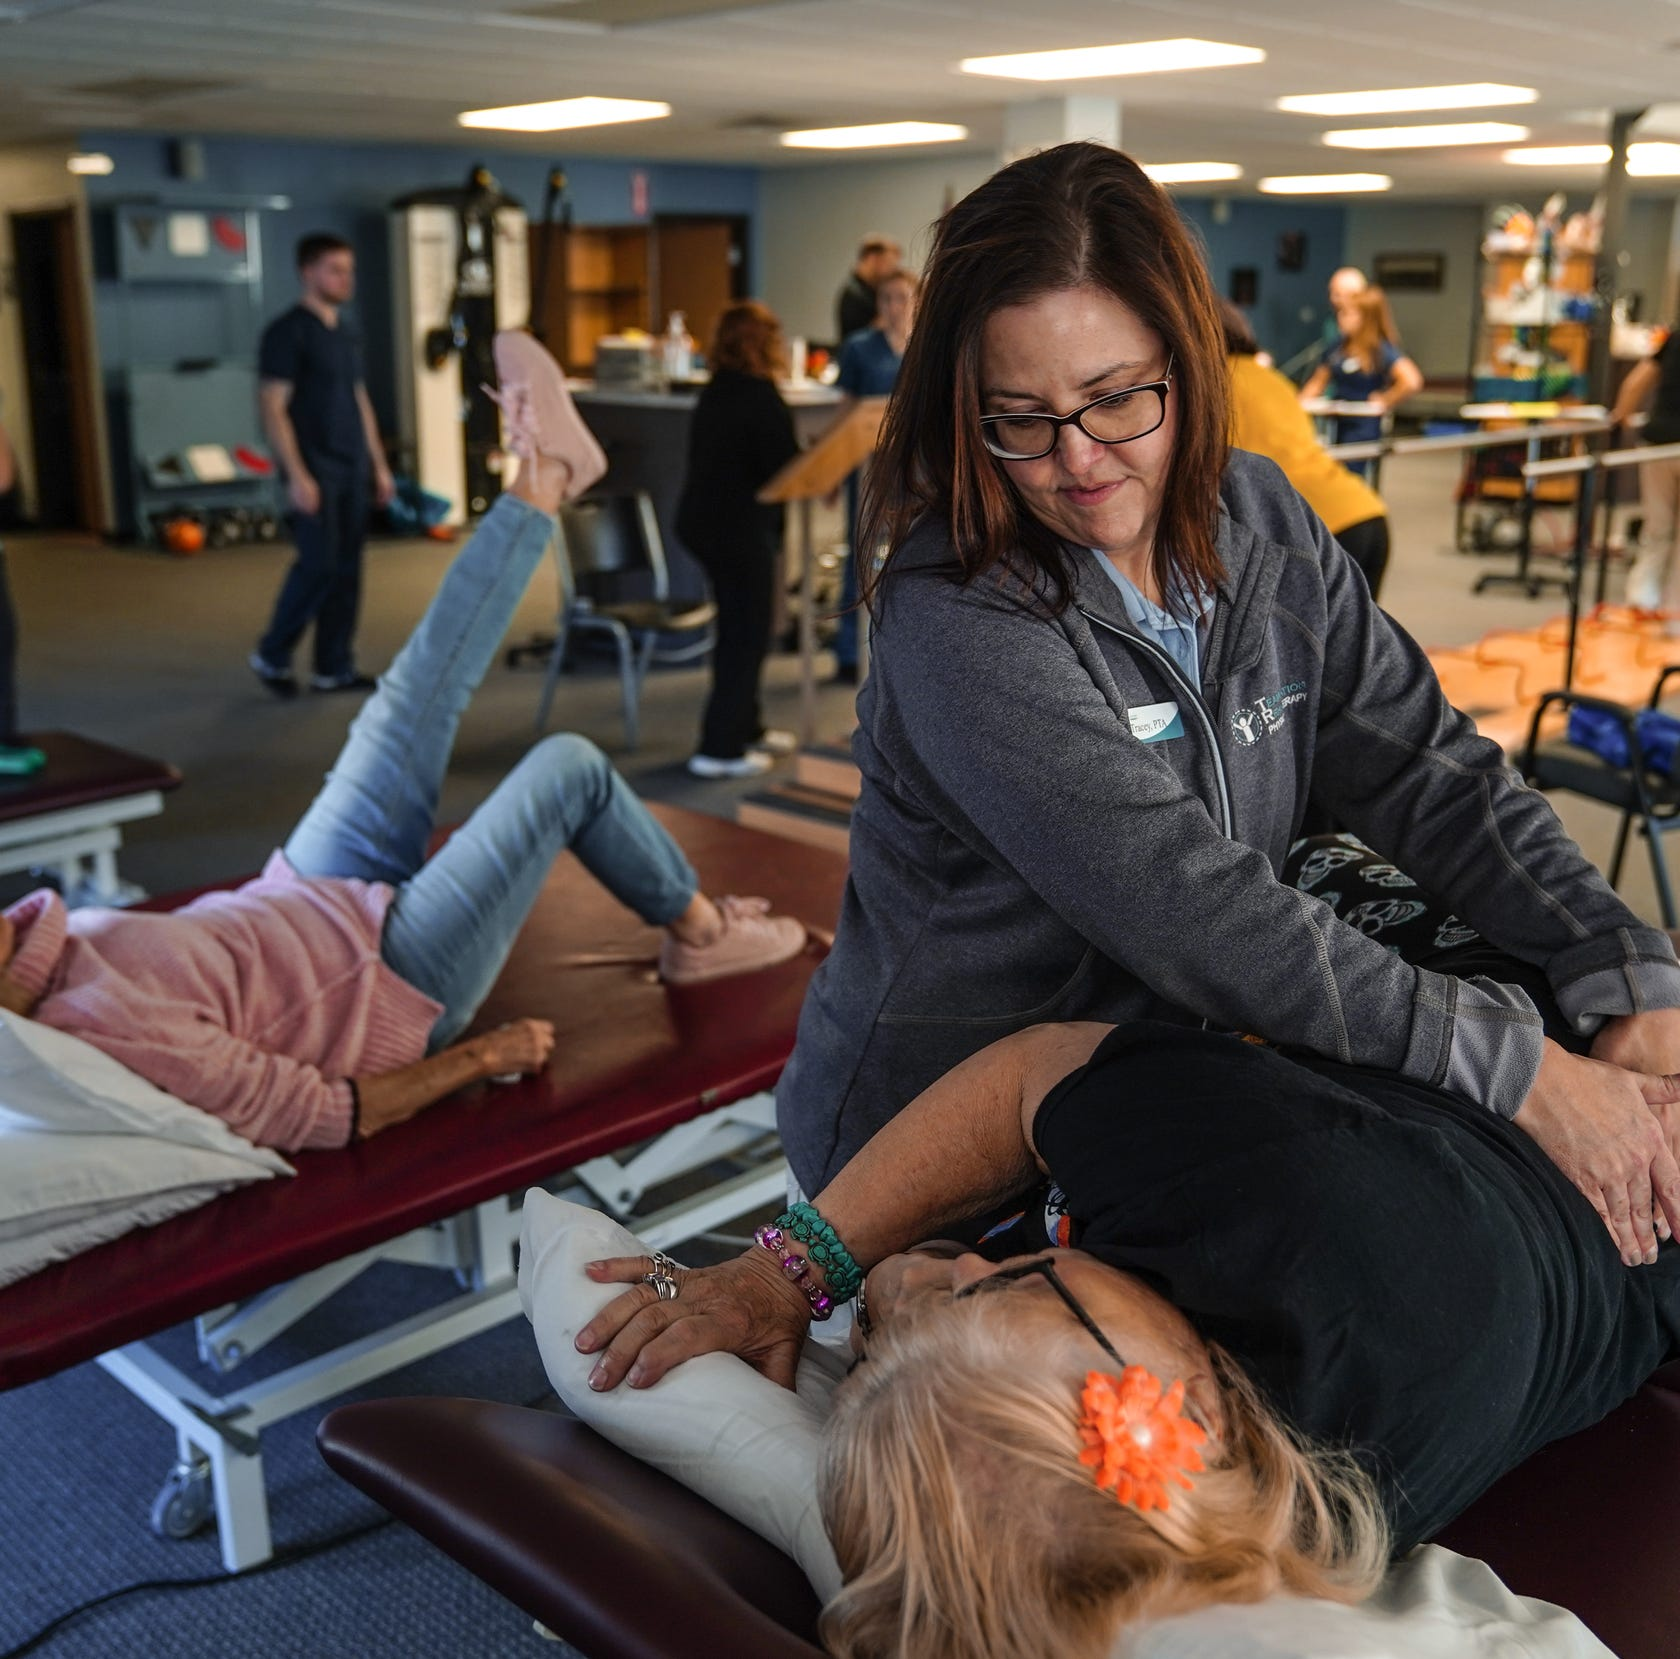 'Flexibility,' of course, is a key strength at Team Rehabilitation